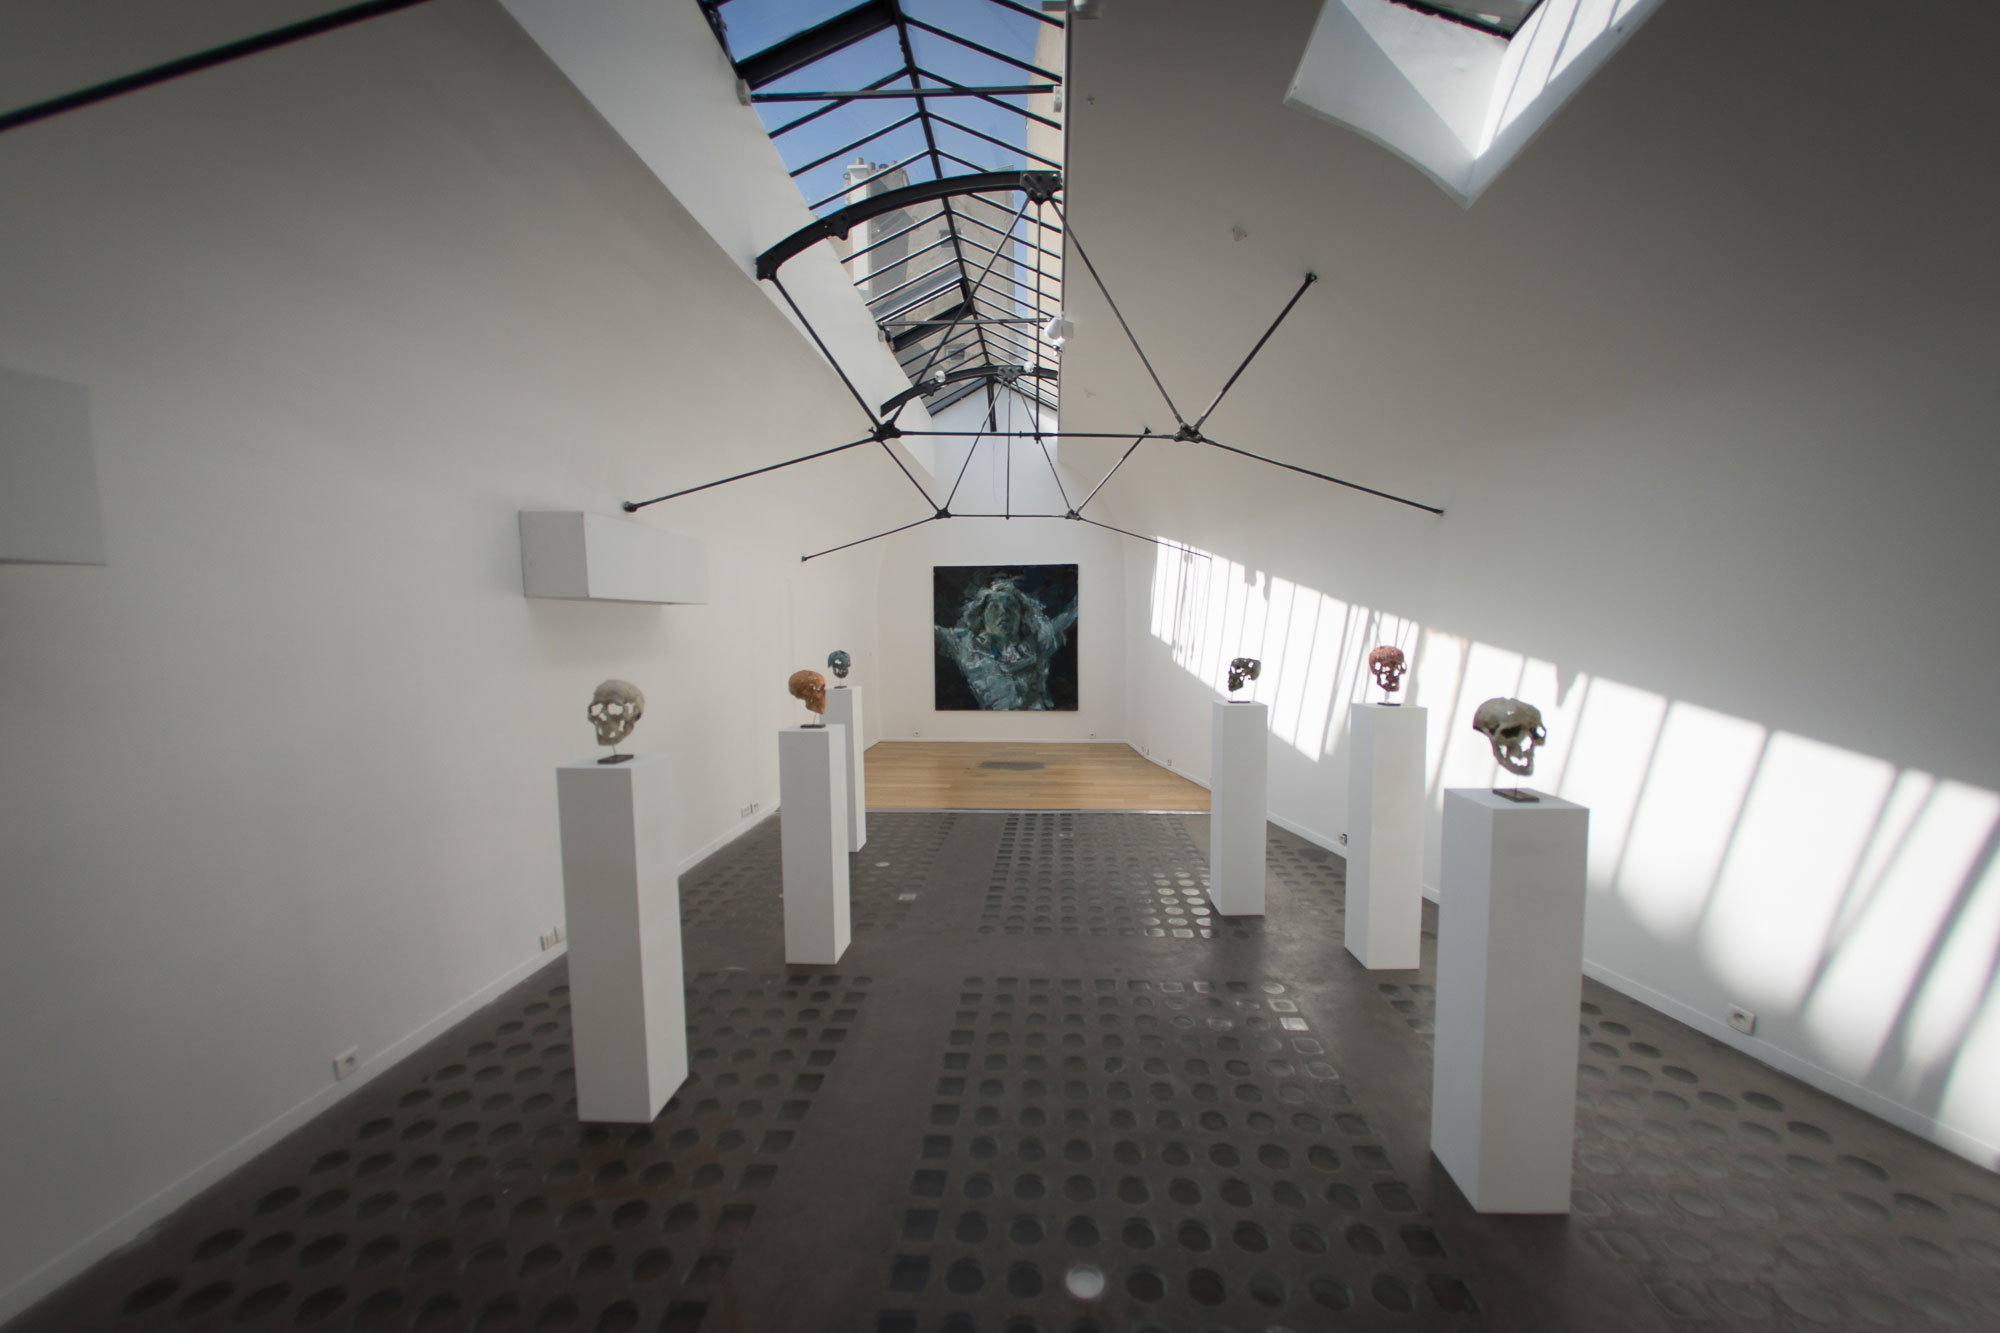 Salle-sidération_Raphael-Thierry_Galerie-Ariane-CY